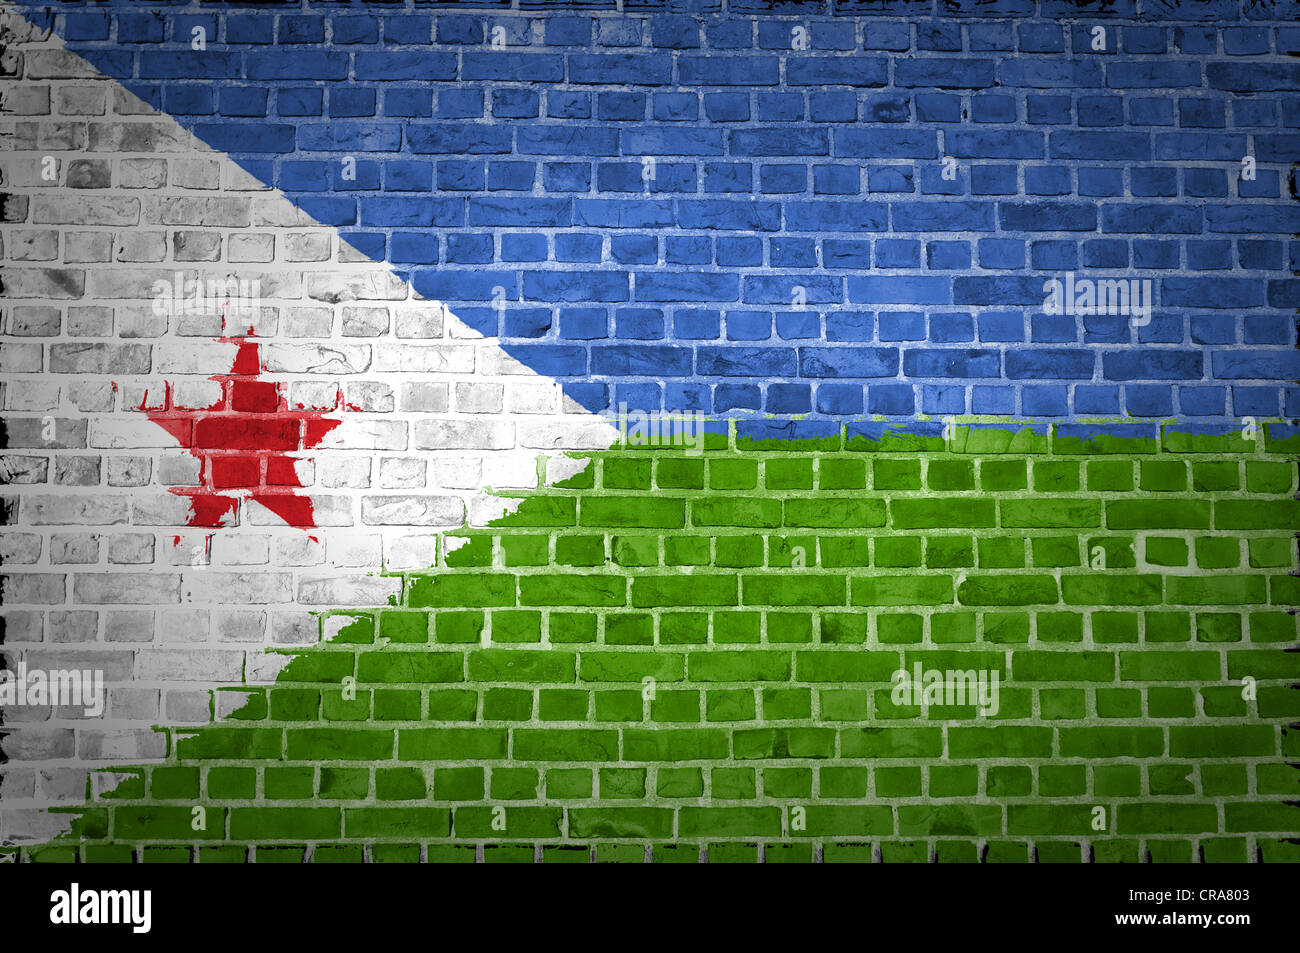 An image of the Djibouti flag painted on a brick wall in an urban location Stock Photo